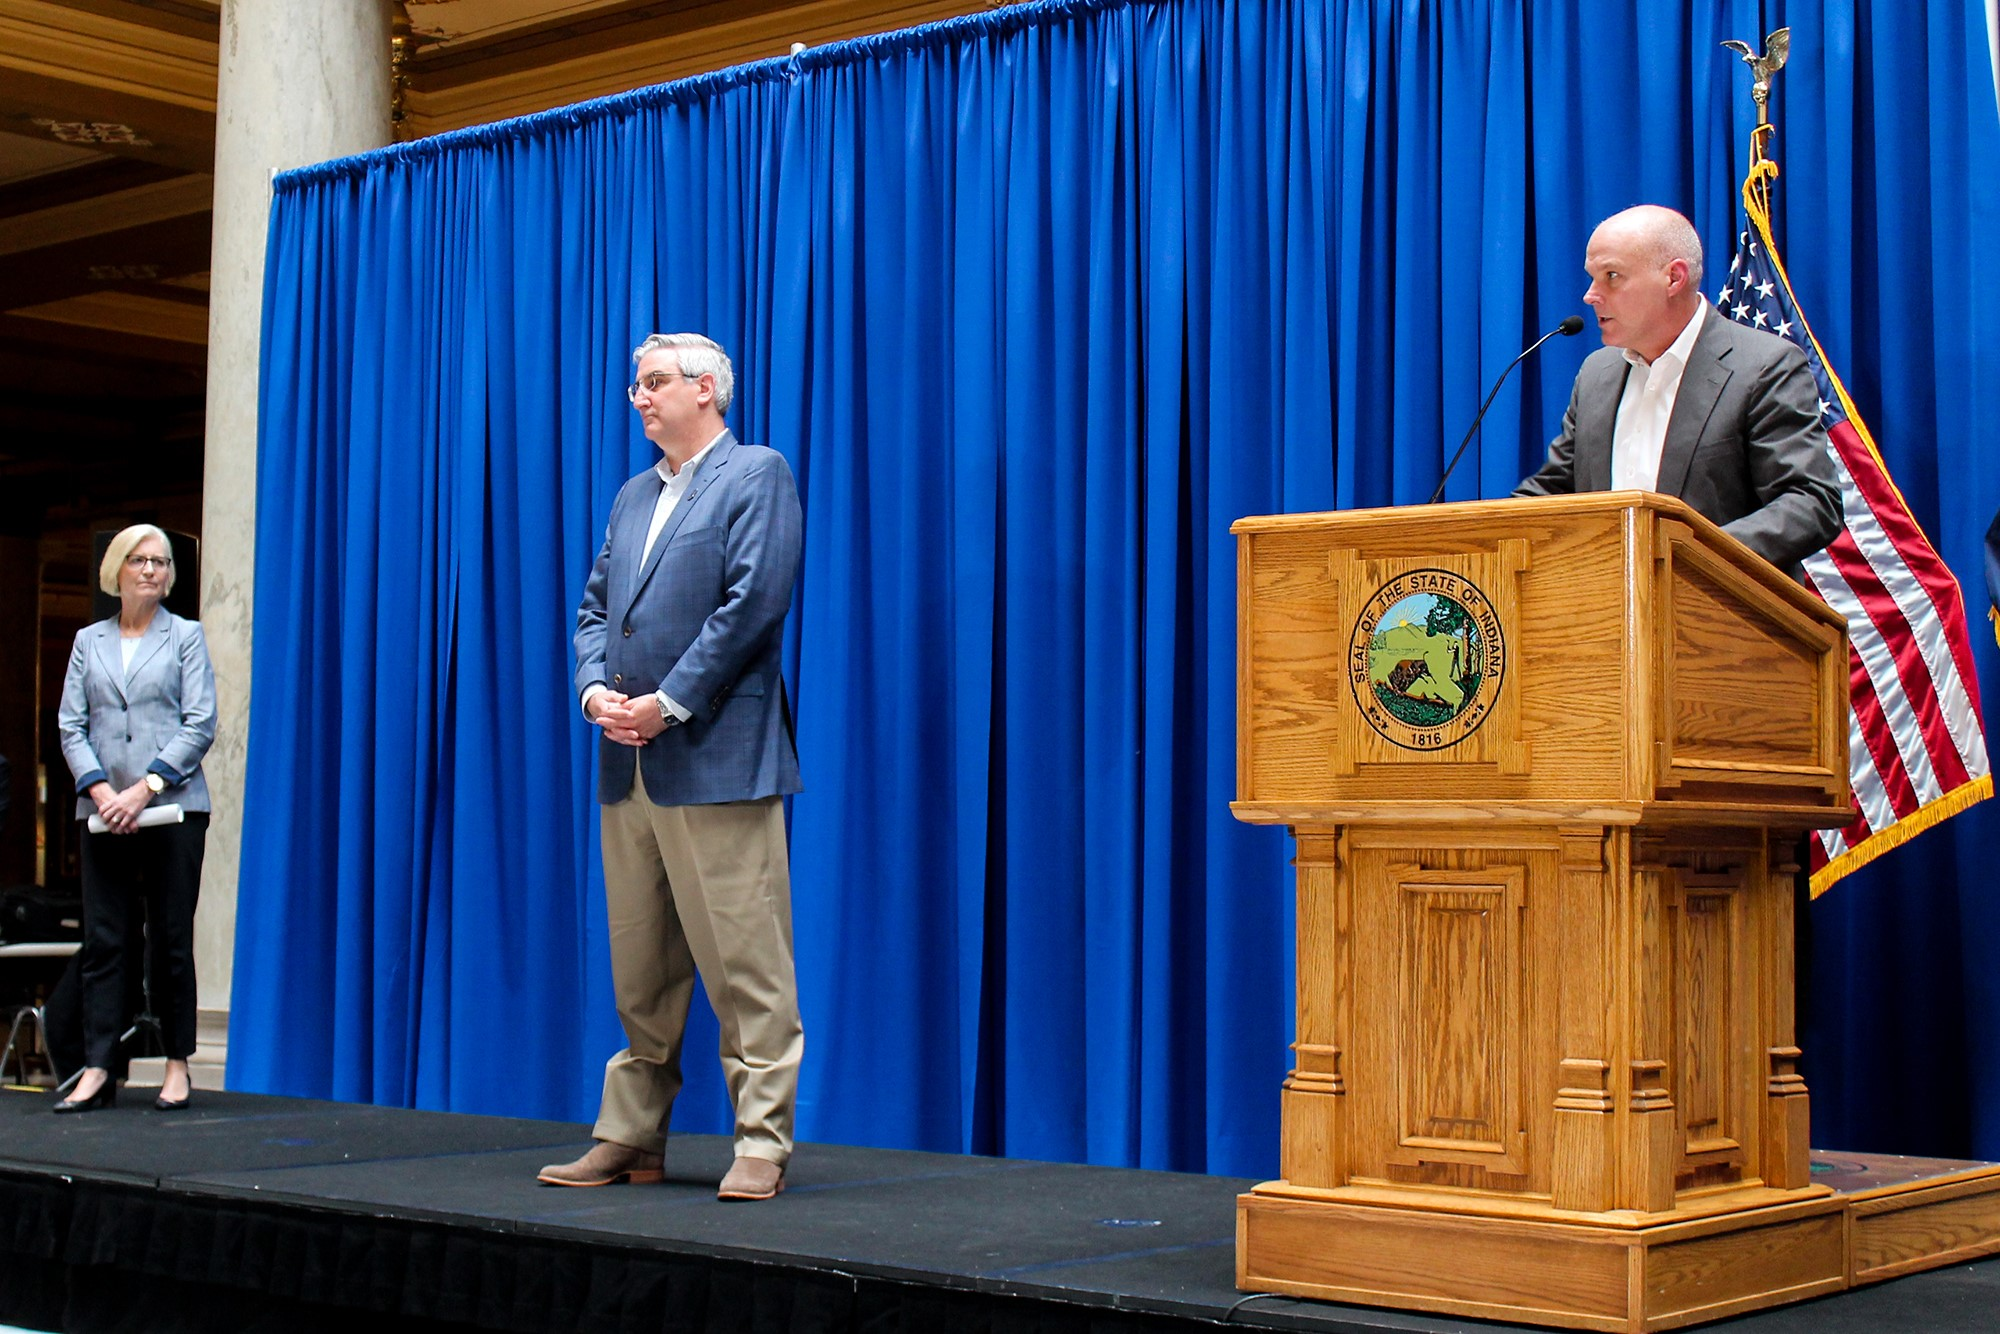 Gov. Eric Holcomb and Kris Box addressing the public.